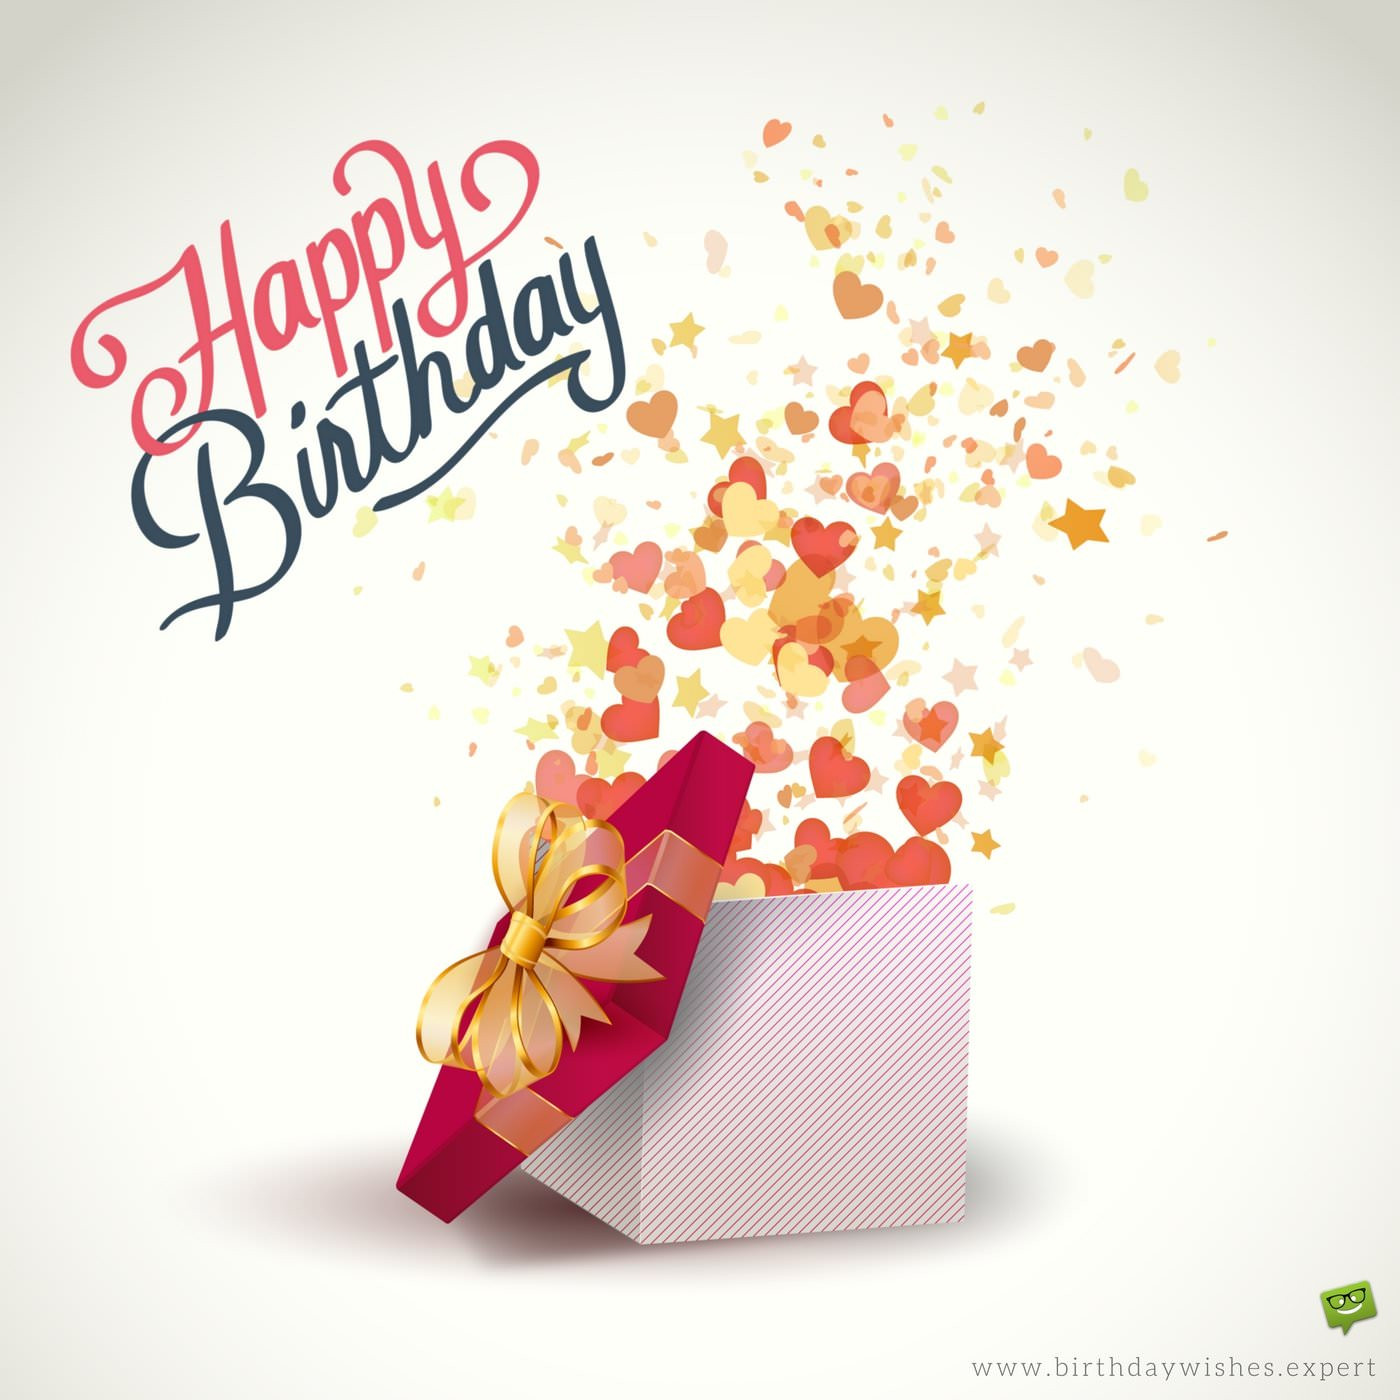 Best ideas about Birthday Wishes Images . Save or Pin Happy Birthday To You Now.